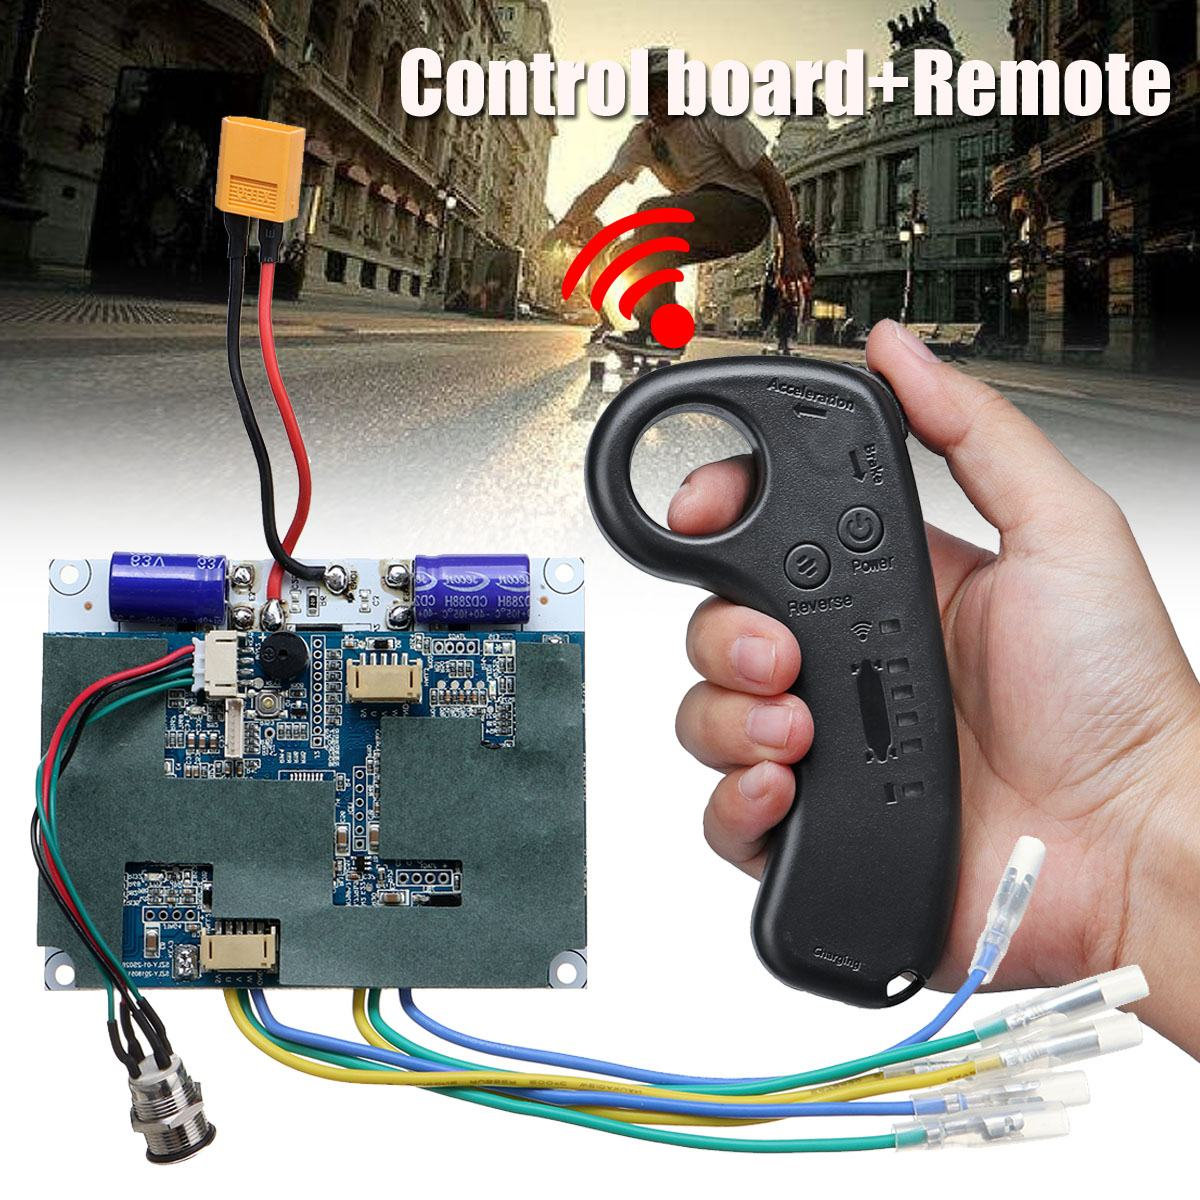 36V Dual Motor Electric Skateboard Longboard Drive Controller ESC Hub motor Mini Remote Electric Skateboard Accessories